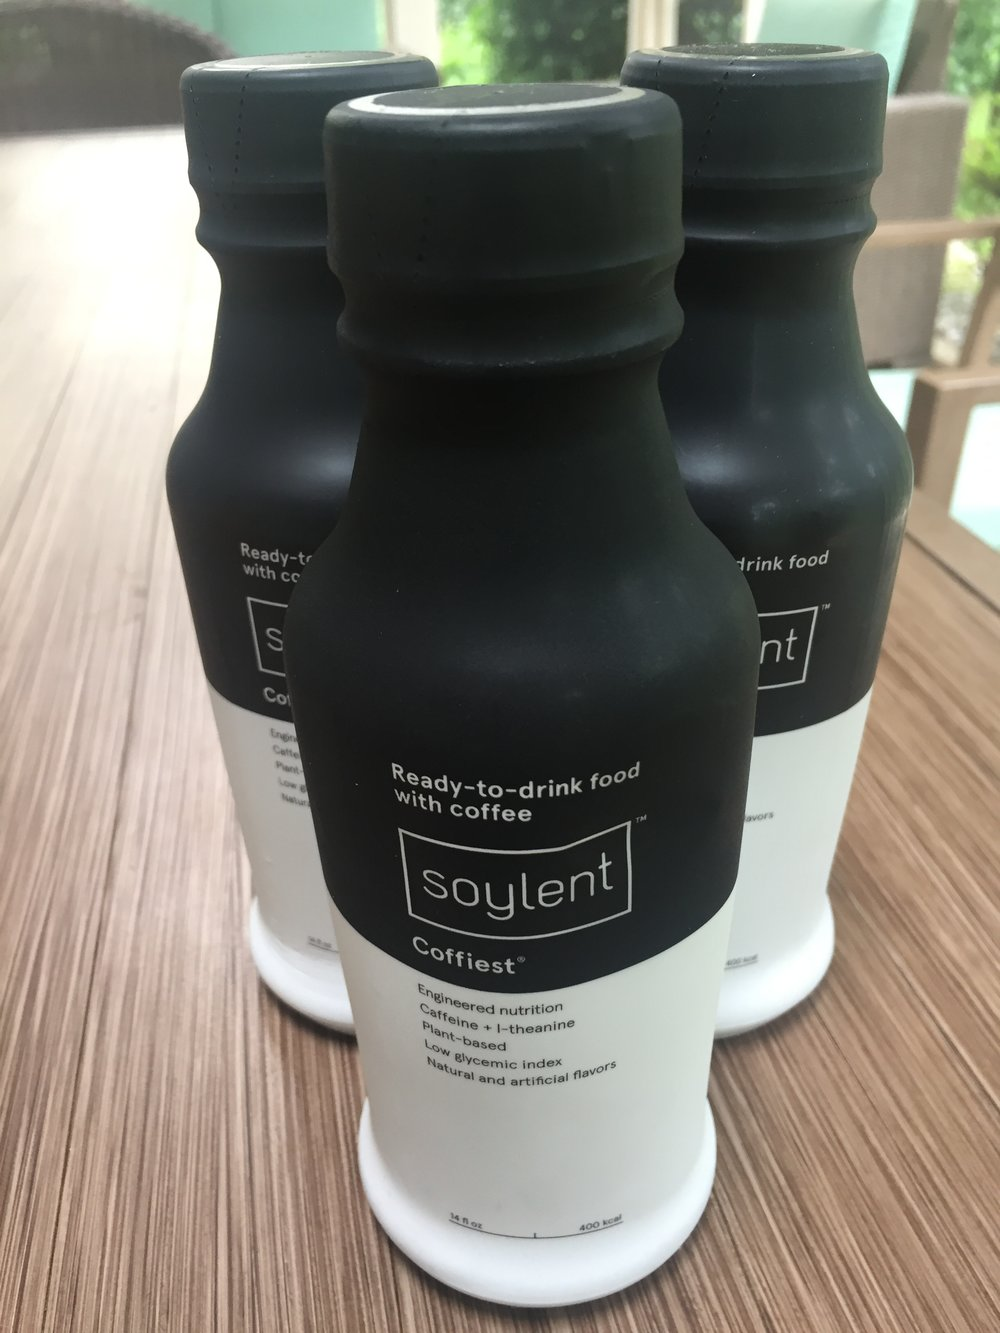 soylent coffiest nutrition and ingredients